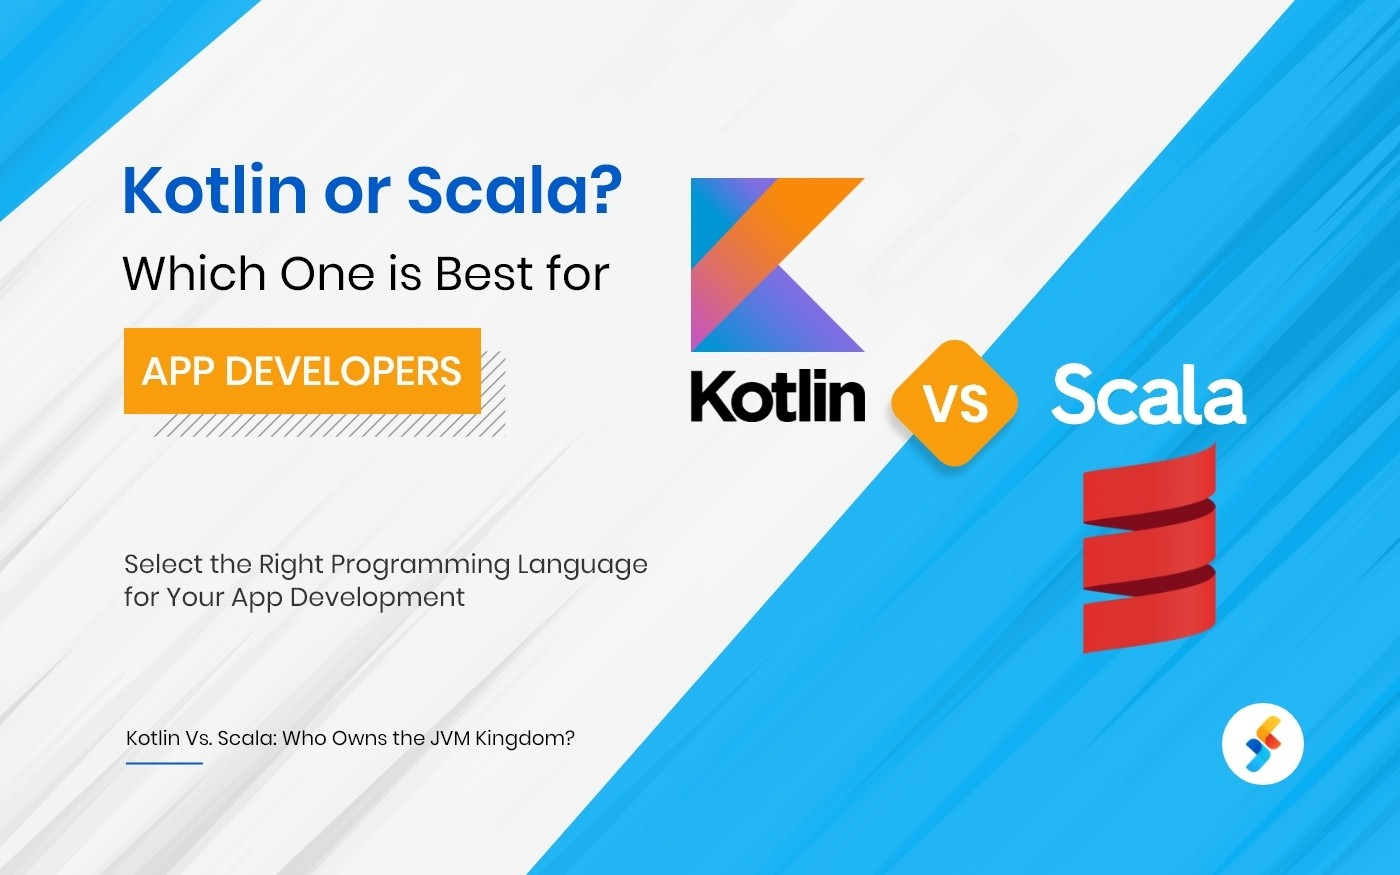 Kotlin or scala